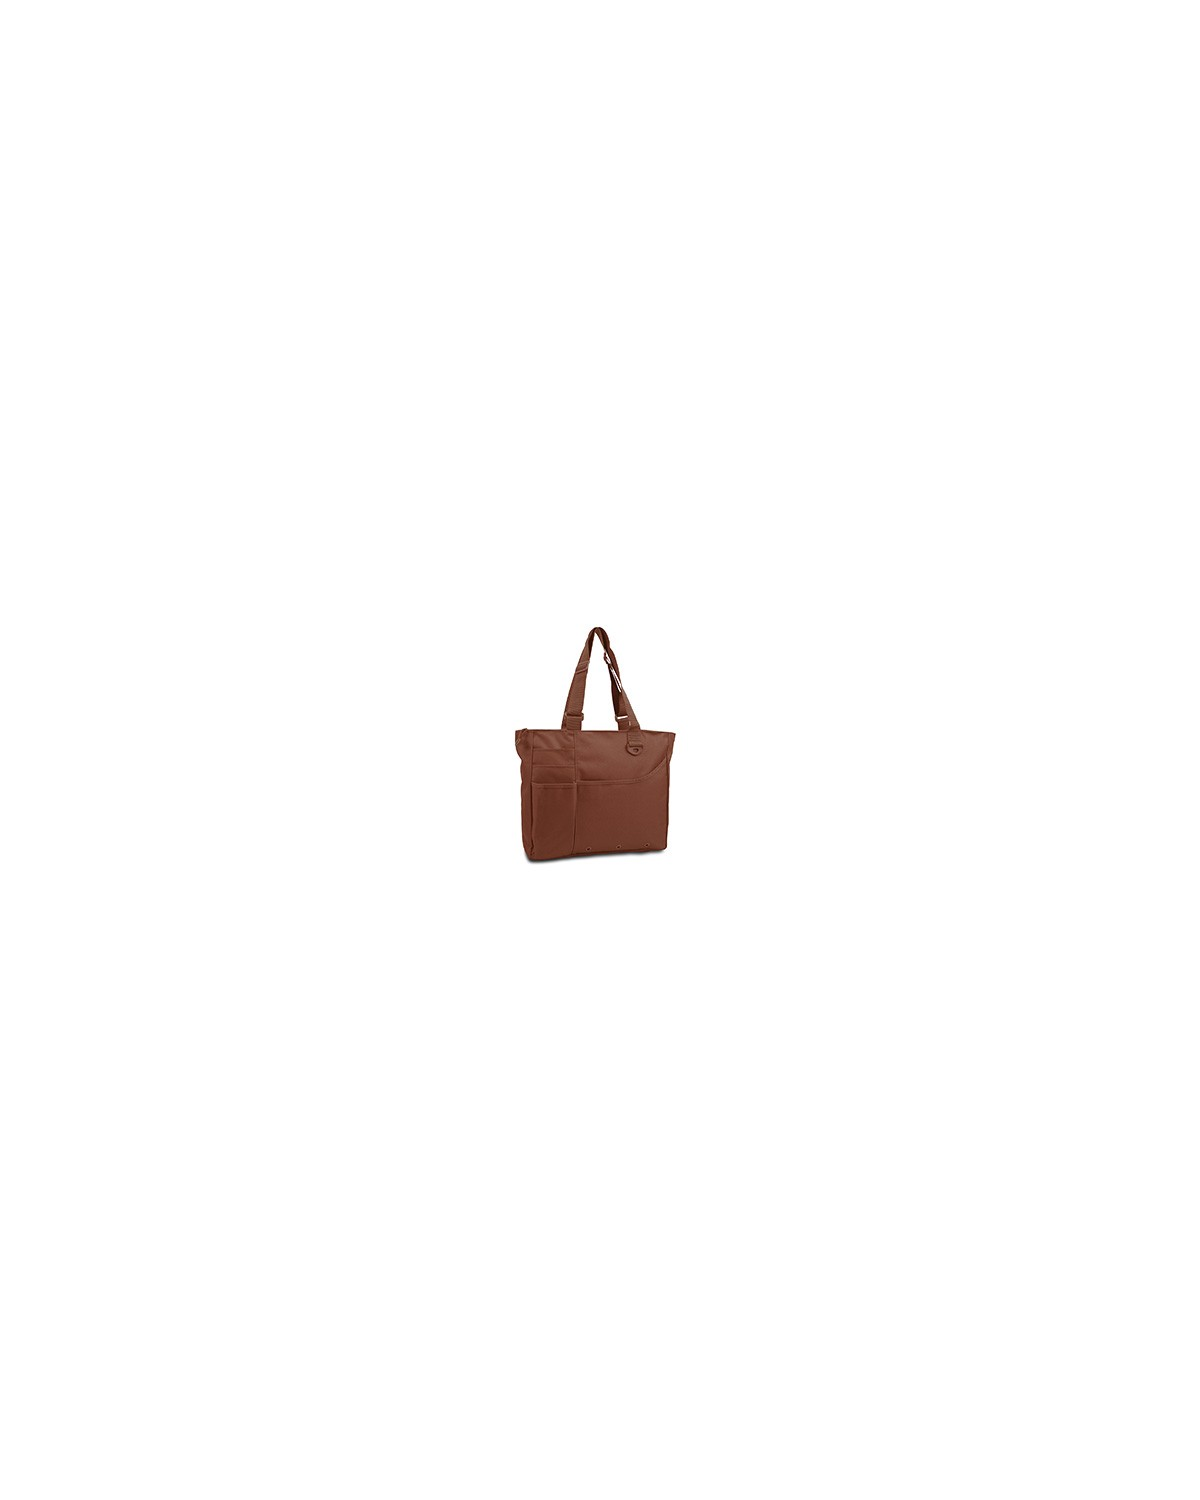 8811 Liberty Bags BROWN